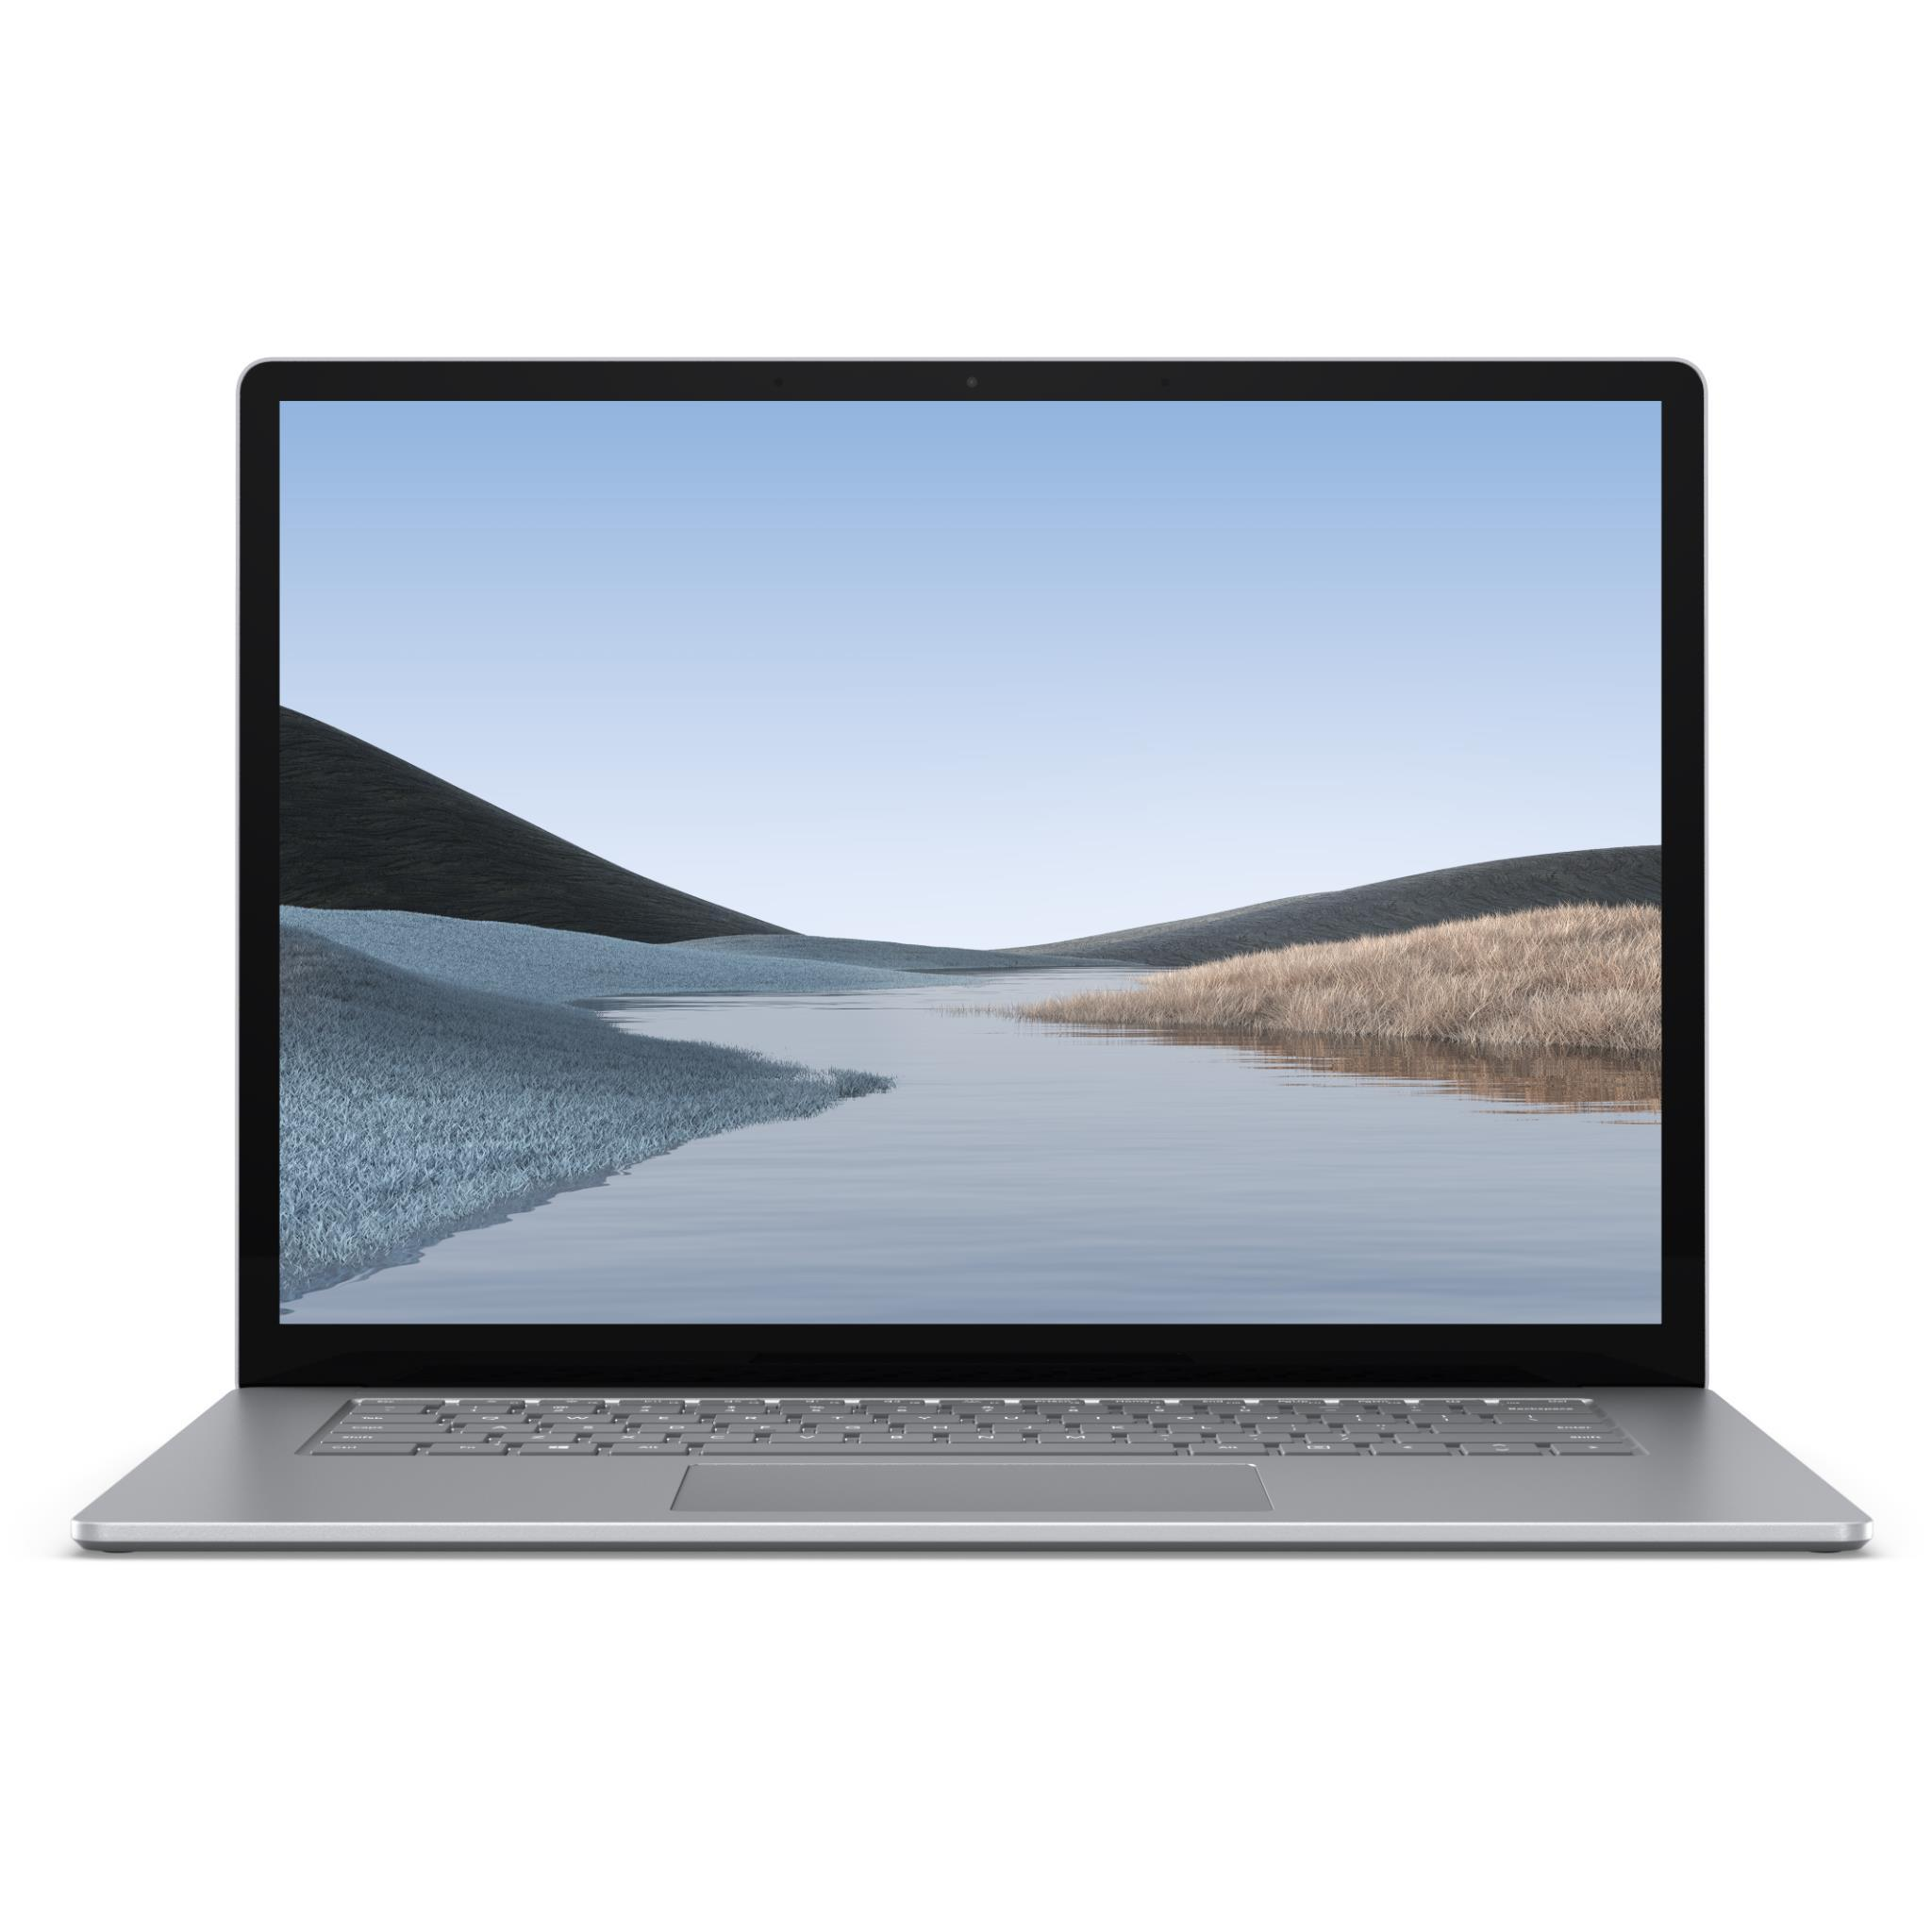 Microsoft Surface Laptop 3 15″ AMD 256GB/16GB (Platinum)